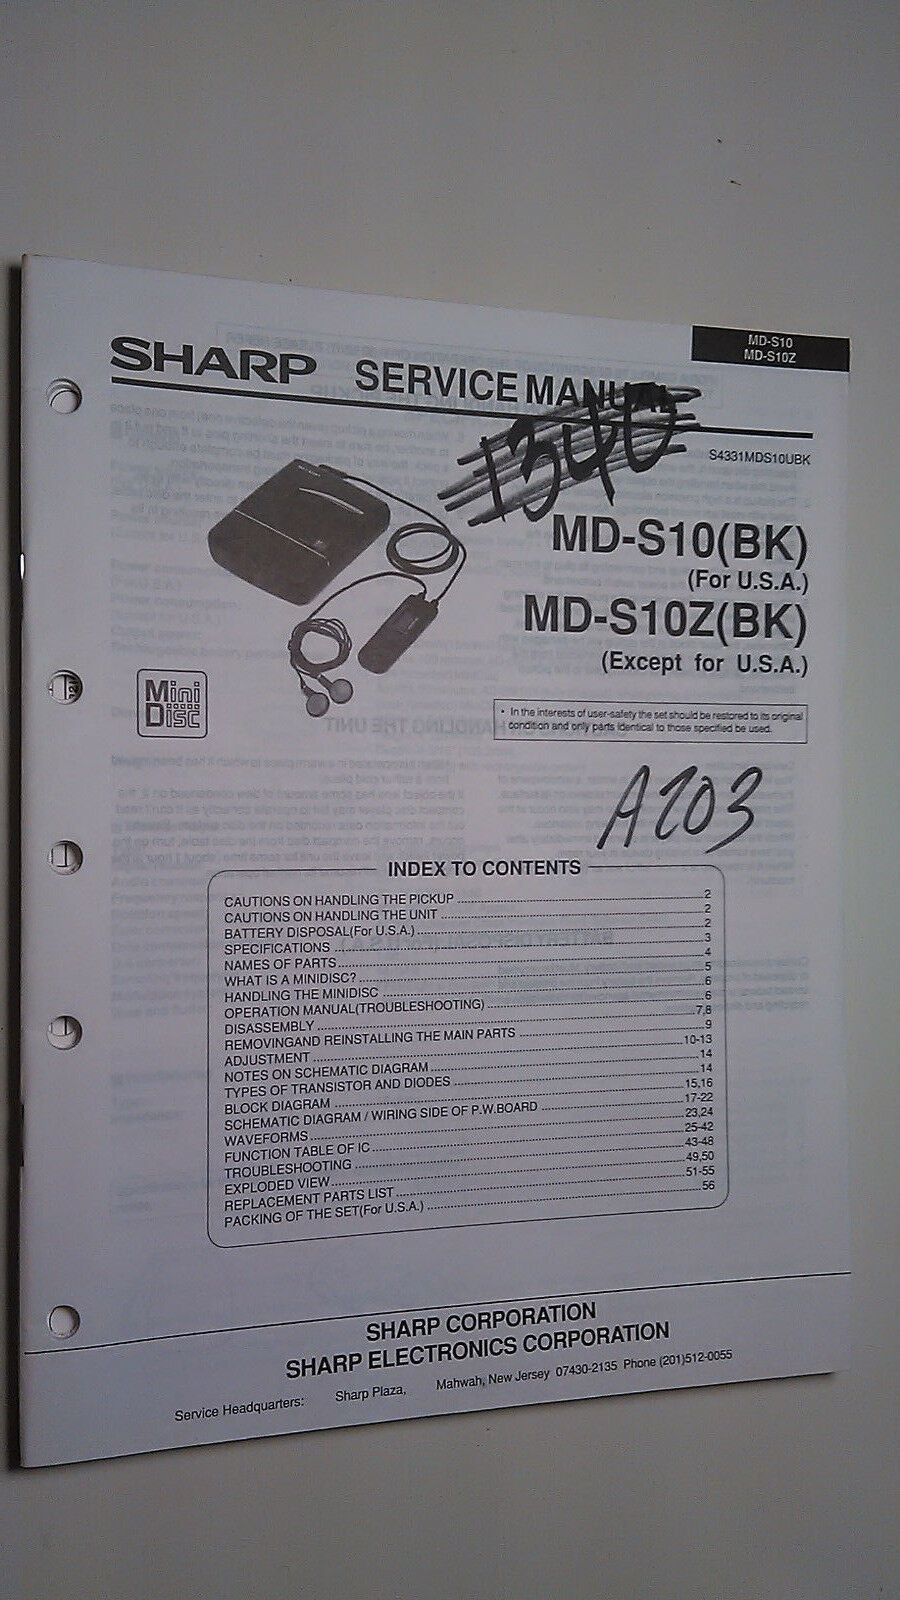 Sharp md-s10 z service manual original repair book stereo minidisk player 1  of 1FREE Shipping ...